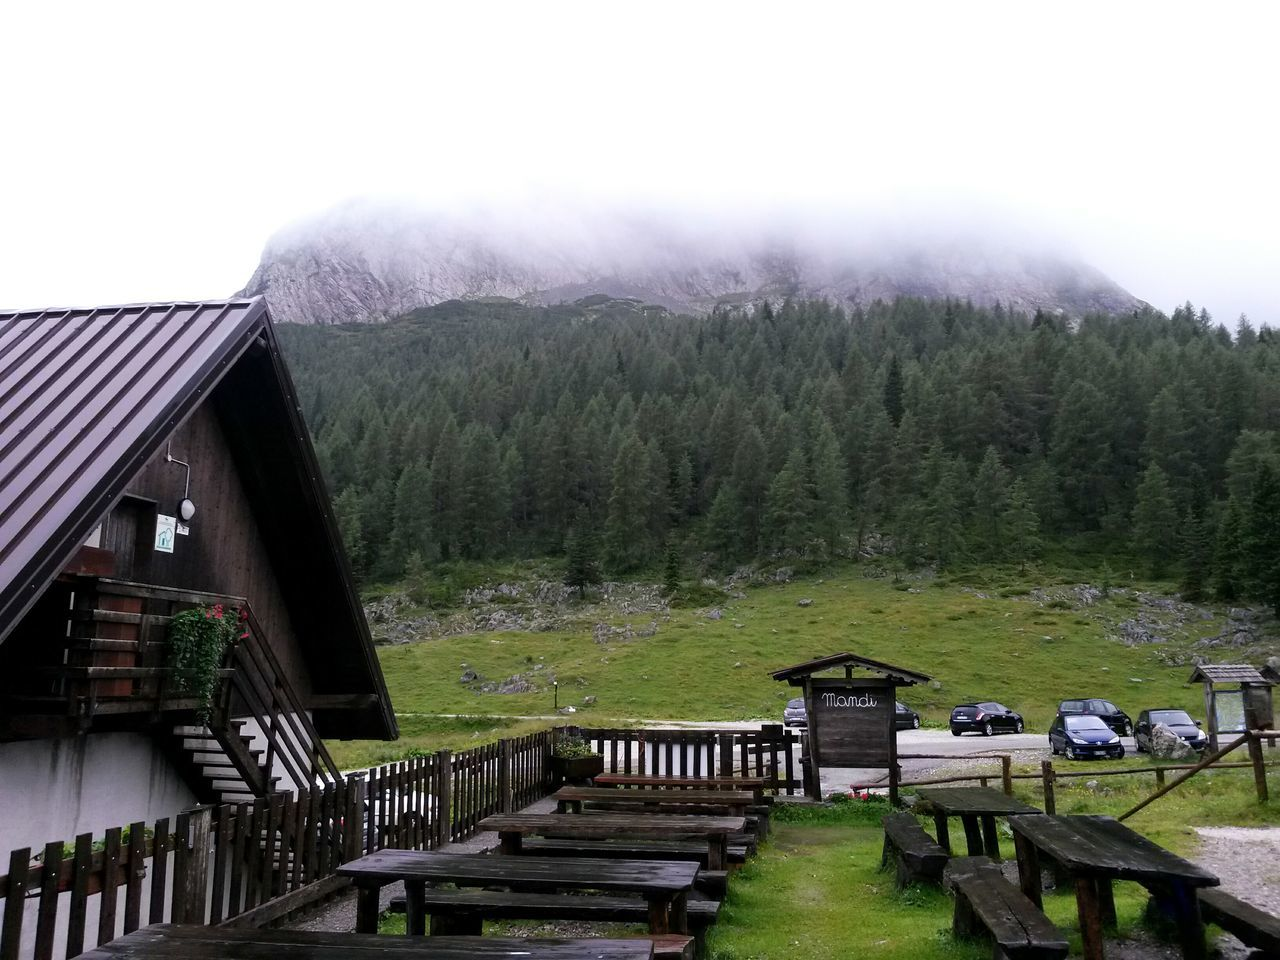 Mandi! Out of the world.. without telephone line, without internet in a Rainy Day at the Malga Mountains And Valleys Mountain View Friuli Venezia Giulia Mountain Shelter Outdoor Life Outdoors, Nature Mountains And Clouds Green Nature Casera Alps